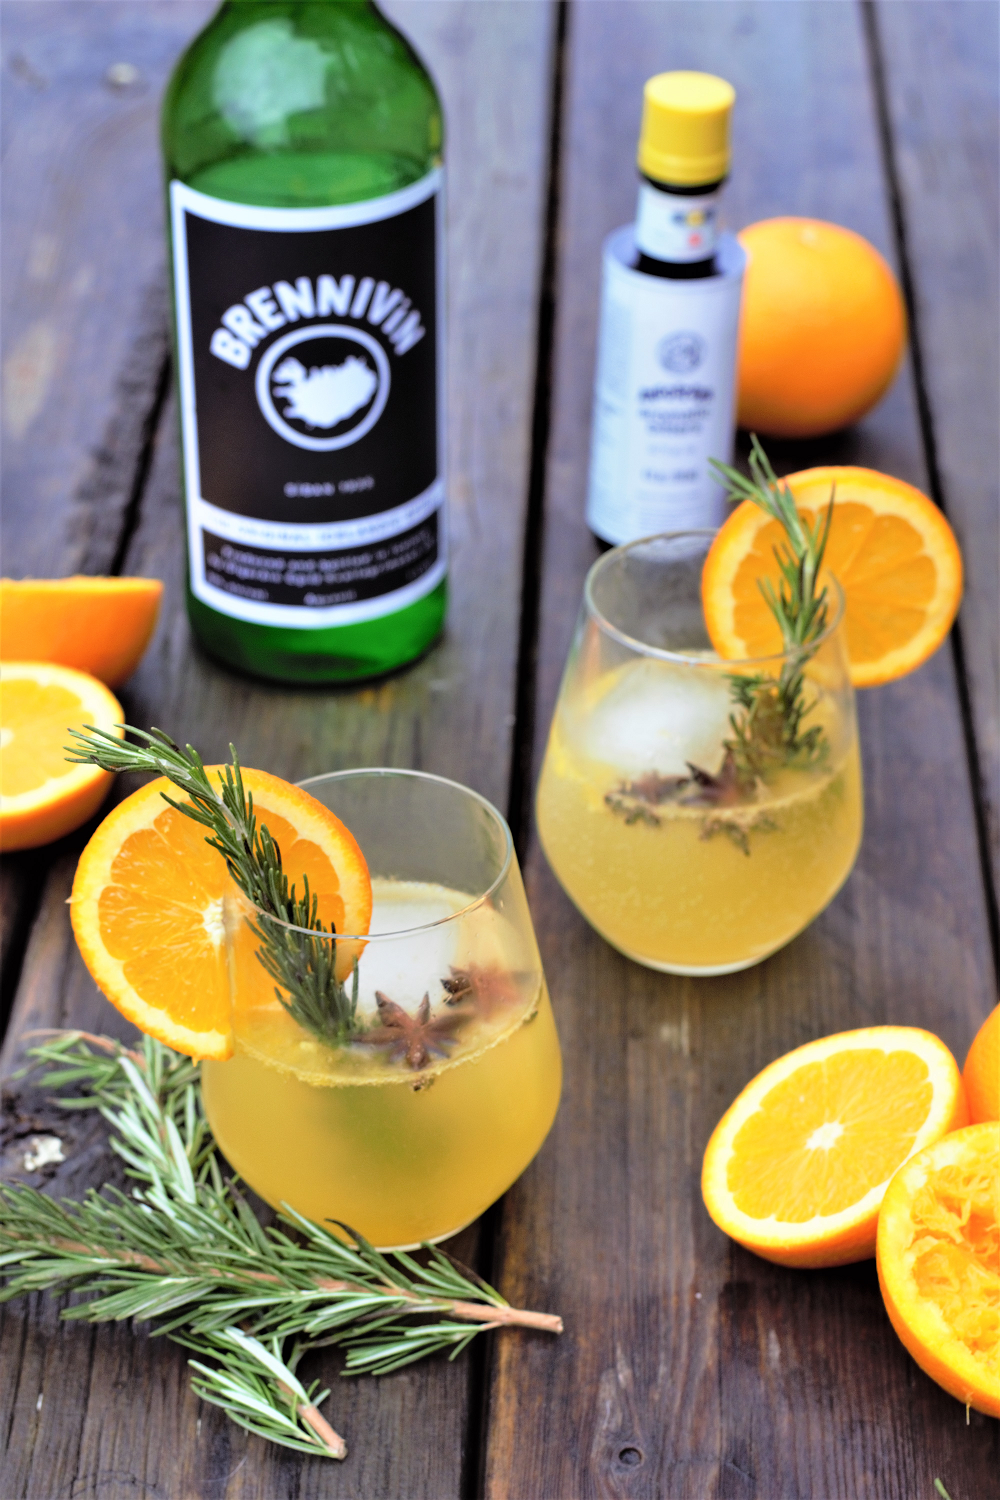 Traditional Icelandic schnapps married with freshly squeezed orange juice & a sprig of rosemary for a crisp, refreshing fall spiced cocktail.